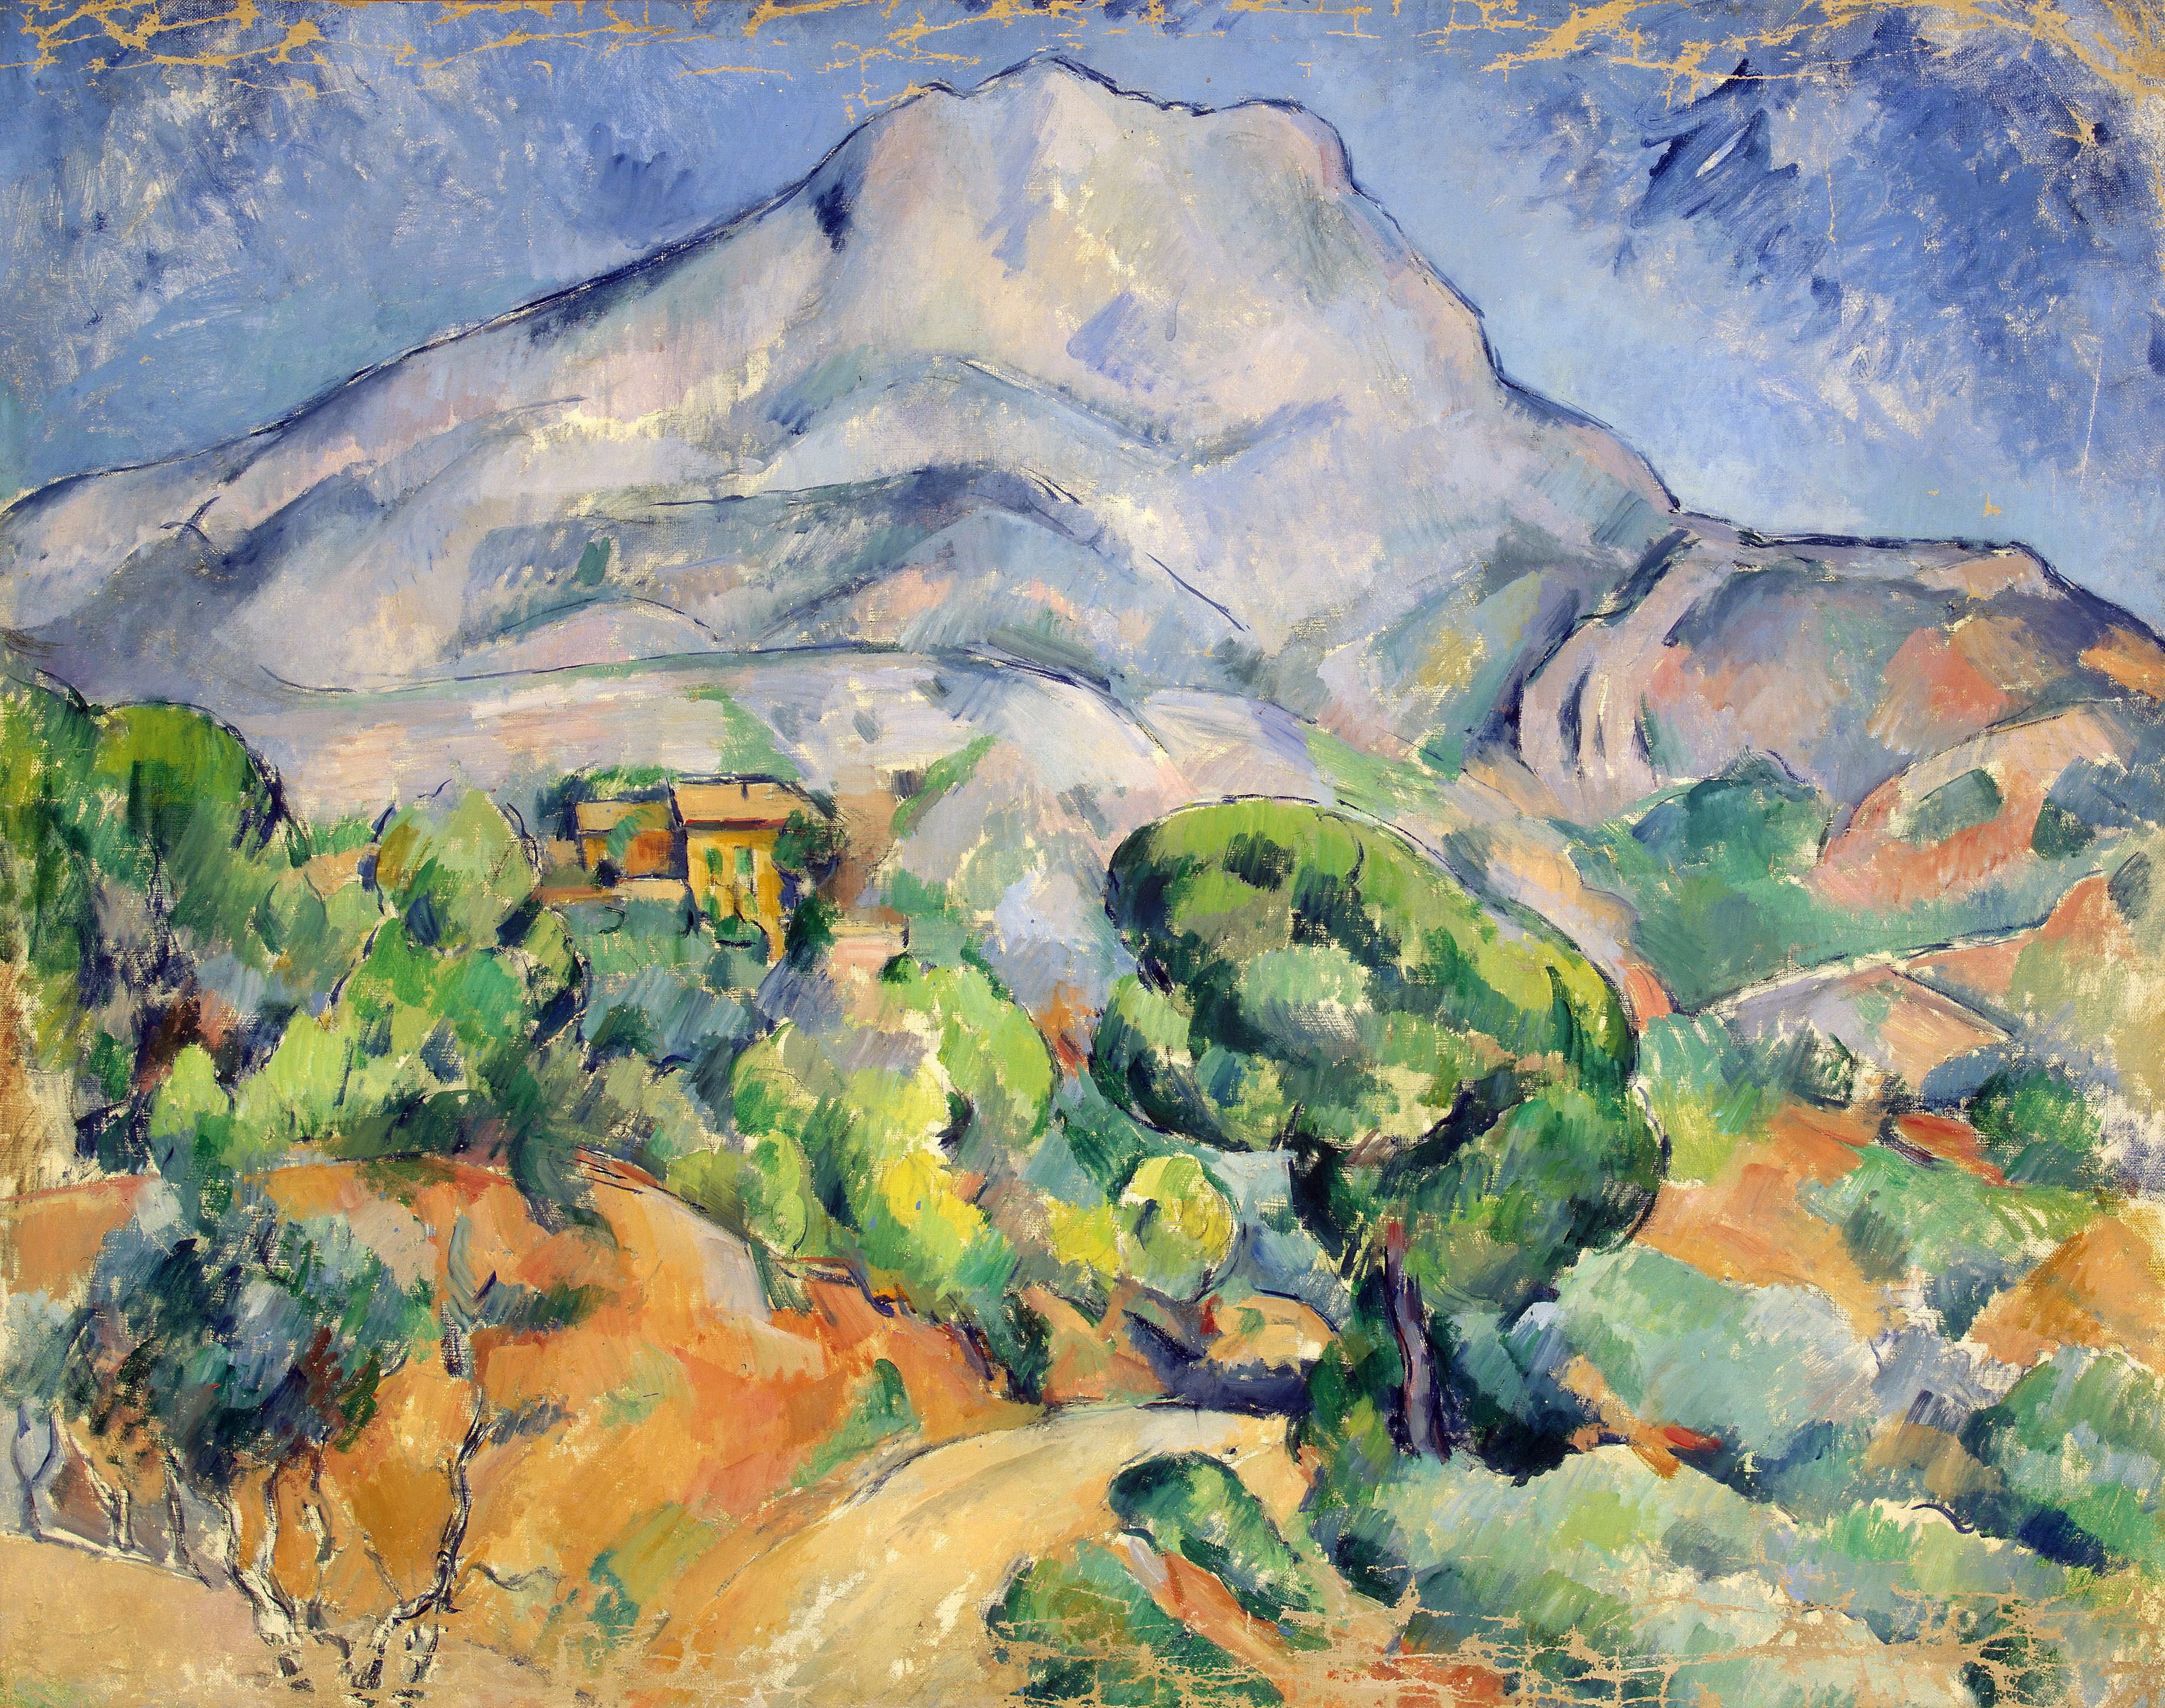 https://media.thisisgallery.com/wp-content/uploads/2018/12/paulcezanne_04.jpg